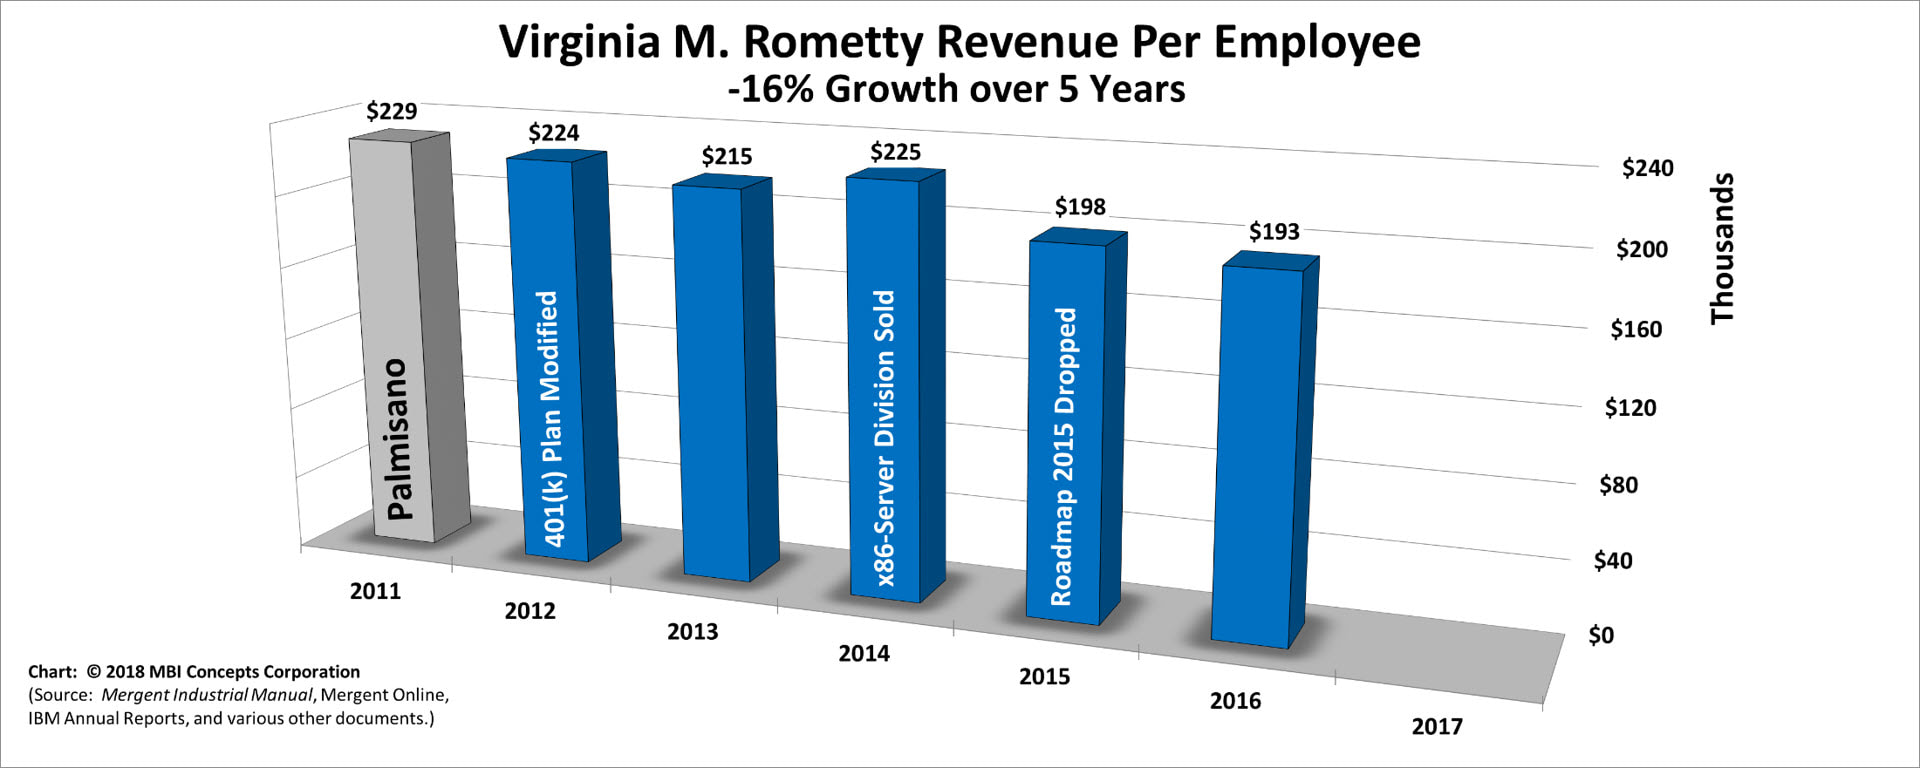 Bar chart of Virginia M. Rometty's Yearly Revenue per Employee over her 5 years as IBM's CEO from 2012 to 2016.